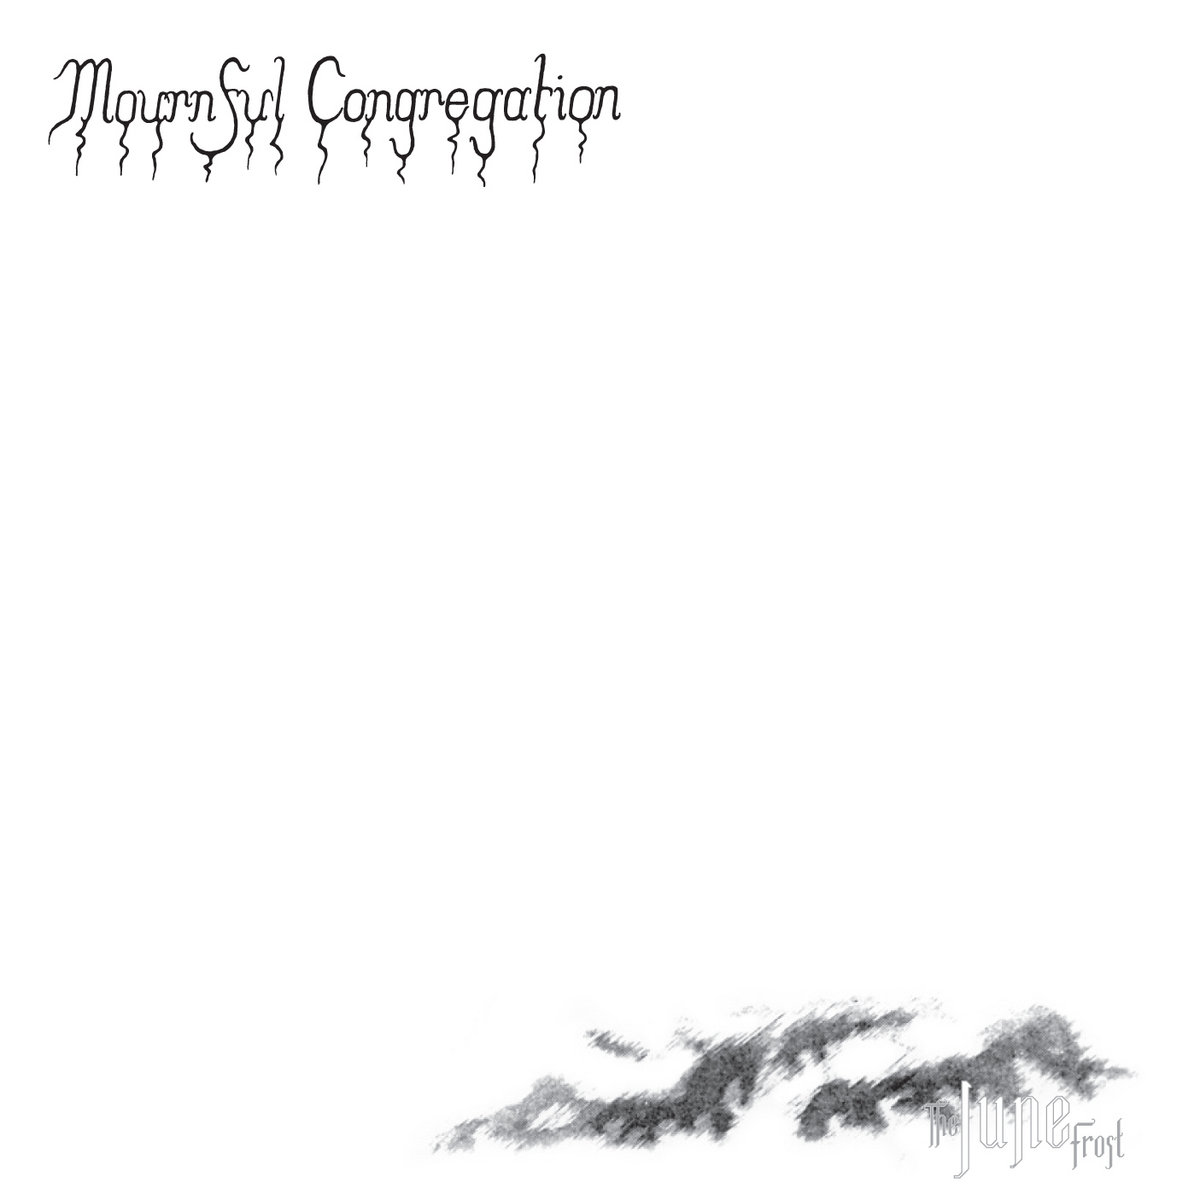 Mournful Congregation - The June Frost (Reissue 2012)